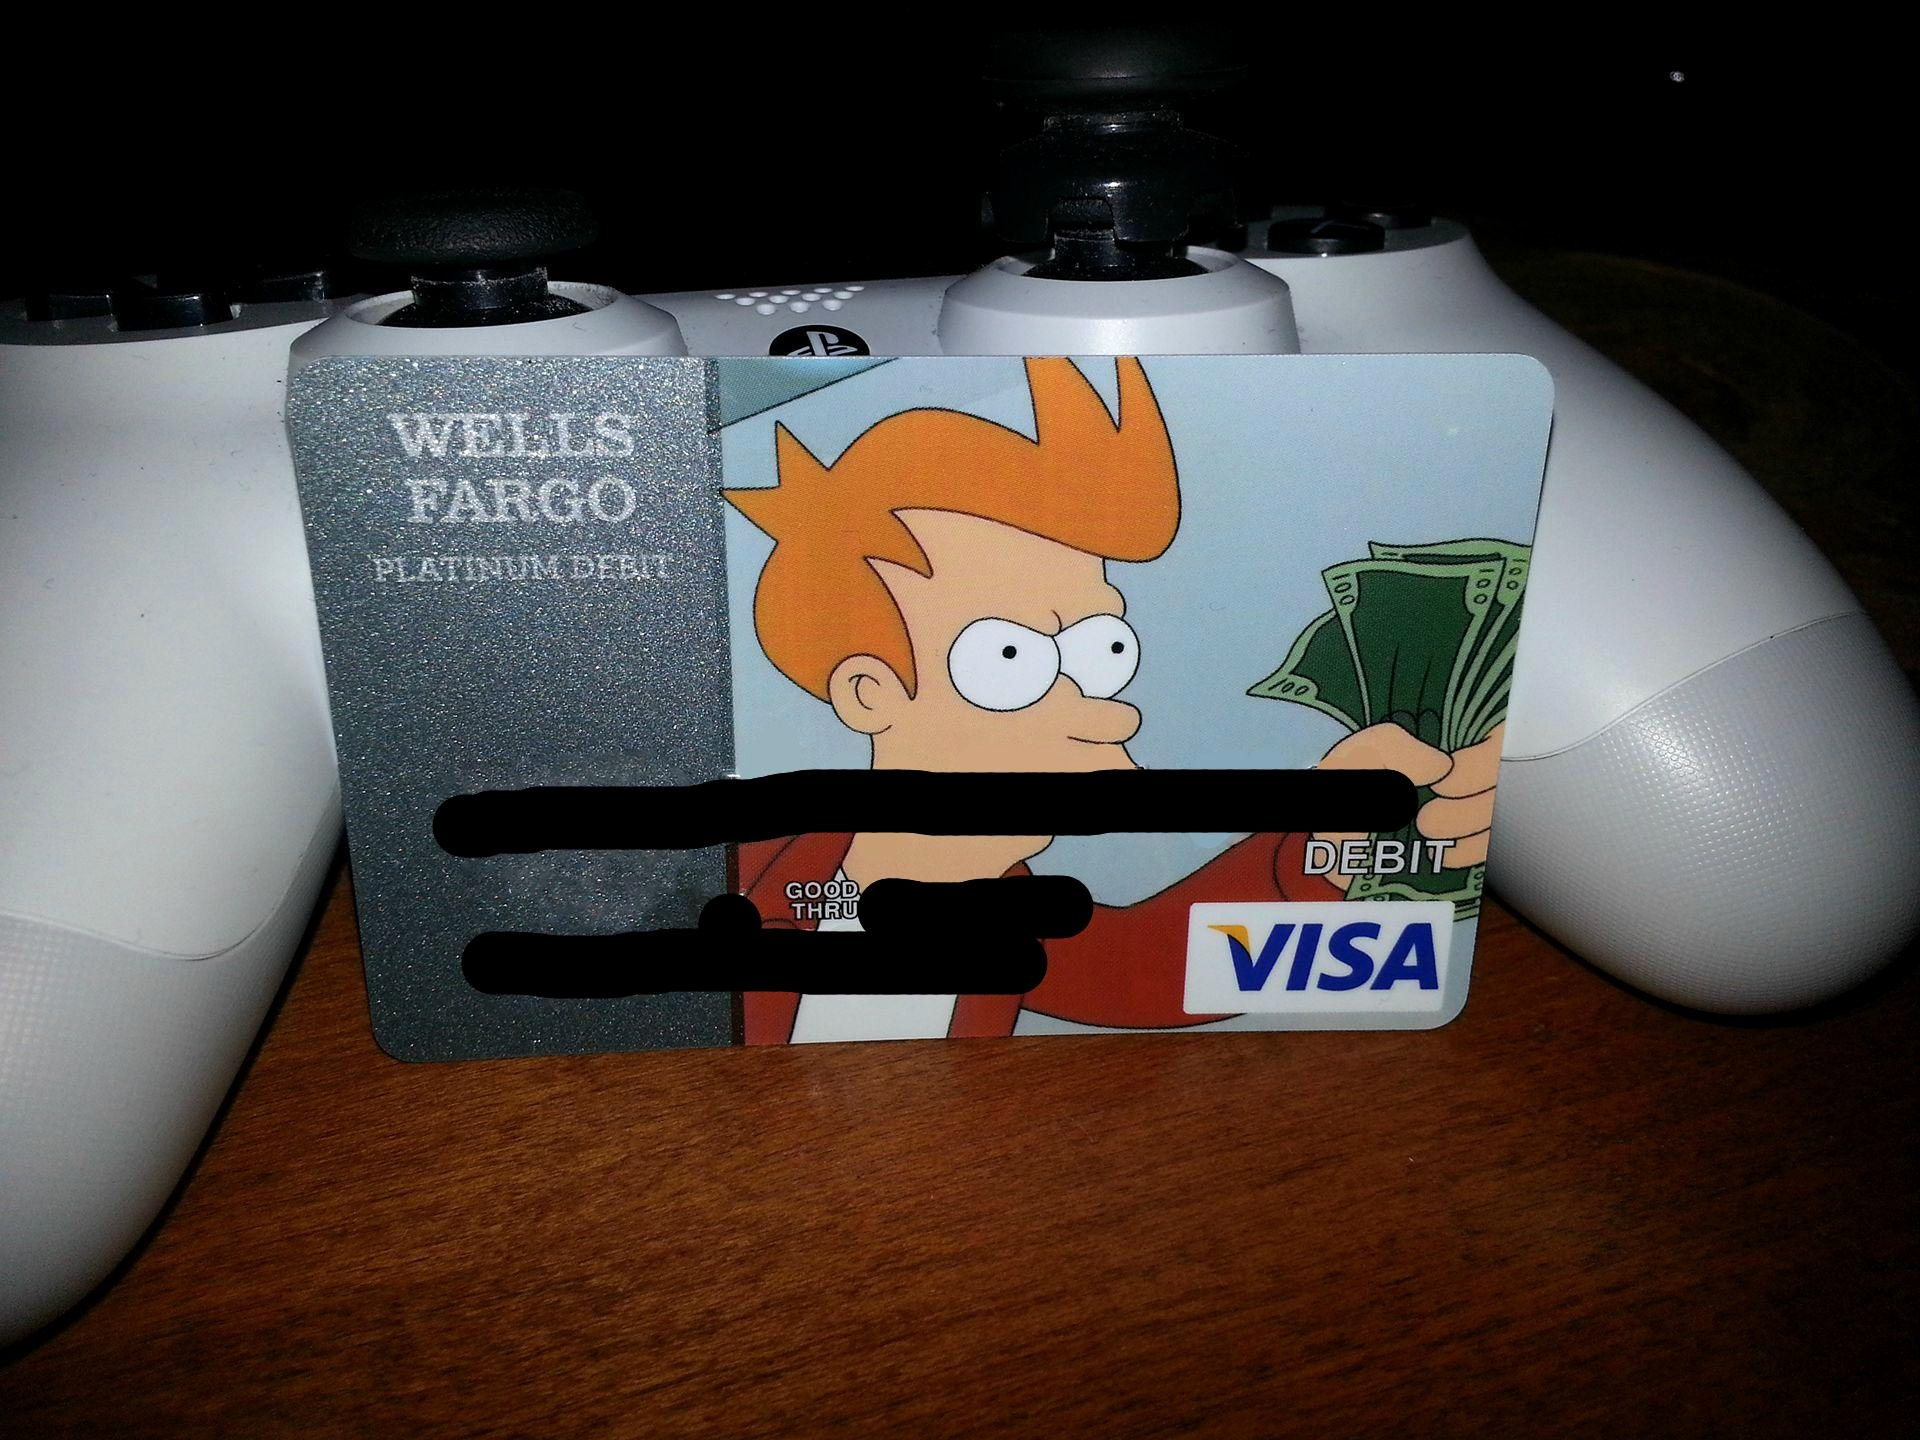 Cool Debit Card Designs Elegant My Bank Finally Accepted My Card Design Funny